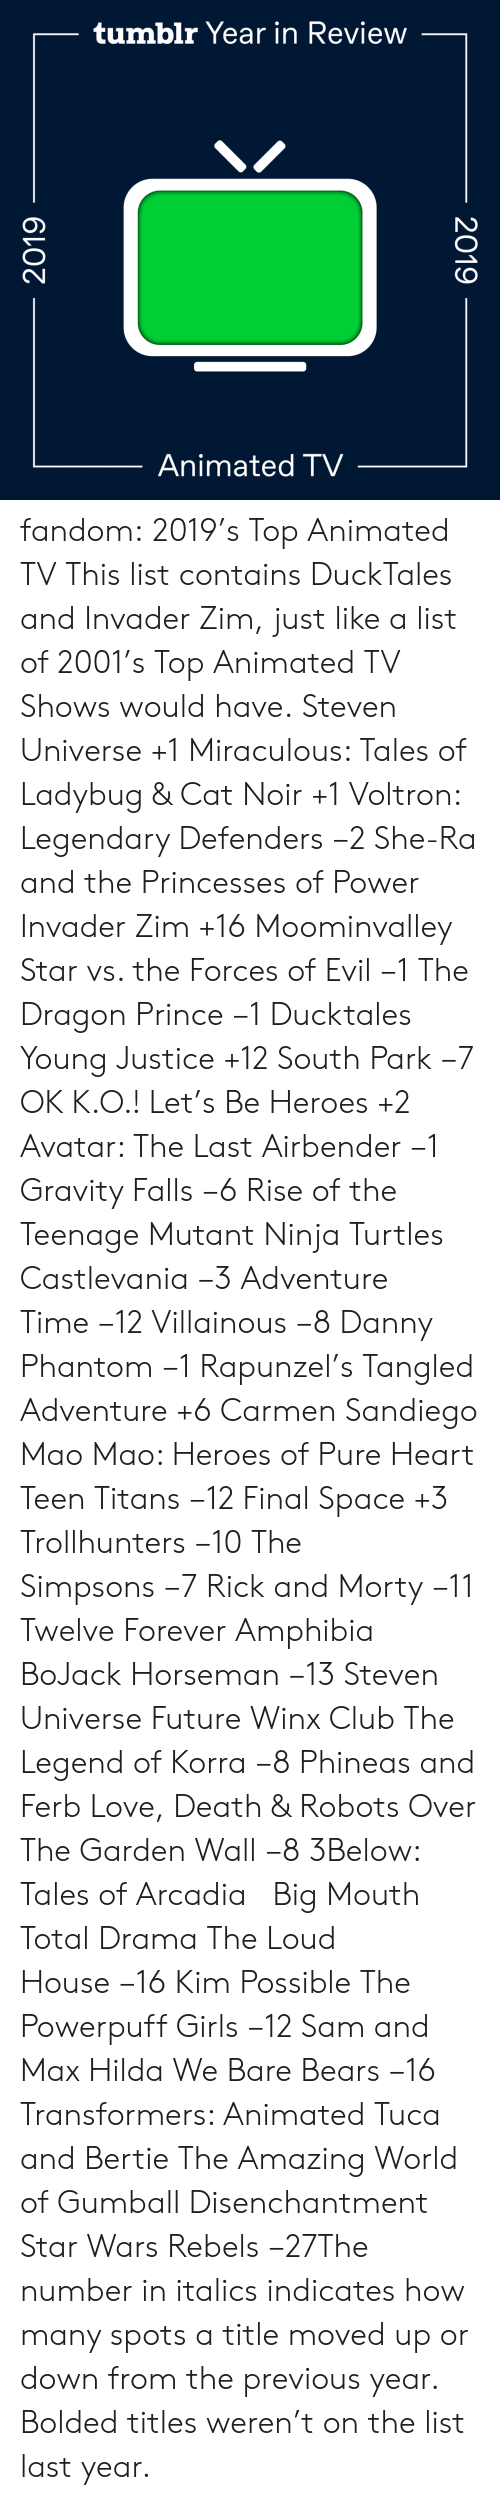 A List Of: tumblr Year in Review  Animated TV  2019  2019 fandom:  2019's Top Animated TV  This list contains DuckTales and Invader Zim, just like a list of 2001's Top Animated TV Shows would have.  Steven Universe +1  Miraculous: Tales of Ladybug & Cat Noir +1  Voltron: Legendary Defenders −2  She-Ra and the Princesses of Power   Invader Zim +16  Moominvalley  Star vs. the Forces of Evil −1  The Dragon Prince −1  Ducktales  Young Justice +12  South Park −7  OK K.O.! Let's Be Heroes +2  Avatar: The Last Airbender −1  Gravity Falls −6  Rise of the Teenage Mutant Ninja Turtles  Castlevania −3  Adventure Time −12  Villainous −8  Danny Phantom −1  Rapunzel's Tangled Adventure +6  Carmen Sandiego  Mao Mao: Heroes of Pure Heart  Teen Titans −12  Final Space +3  Trollhunters −10  The Simpsons −7  Rick and Morty −11  Twelve Forever  Amphibia  BoJack Horseman −13  Steven Universe Future  Winx Club  The Legend of Korra −8  Phineas and Ferb  Love, Death & Robots  Over The Garden Wall −8  3Below: Tales of Arcadia    Big Mouth  Total Drama  The Loud House −16  Kim Possible  The Powerpuff Girls −12  Sam and Max  Hilda  We Bare Bears −16  Transformers: Animated  Tuca and Bertie  The Amazing World of Gumball  Disenchantment Star Wars Rebels −27The number in italics indicates how many spots a title moved up or down from the previous year. Bolded titles weren't on the list last year.